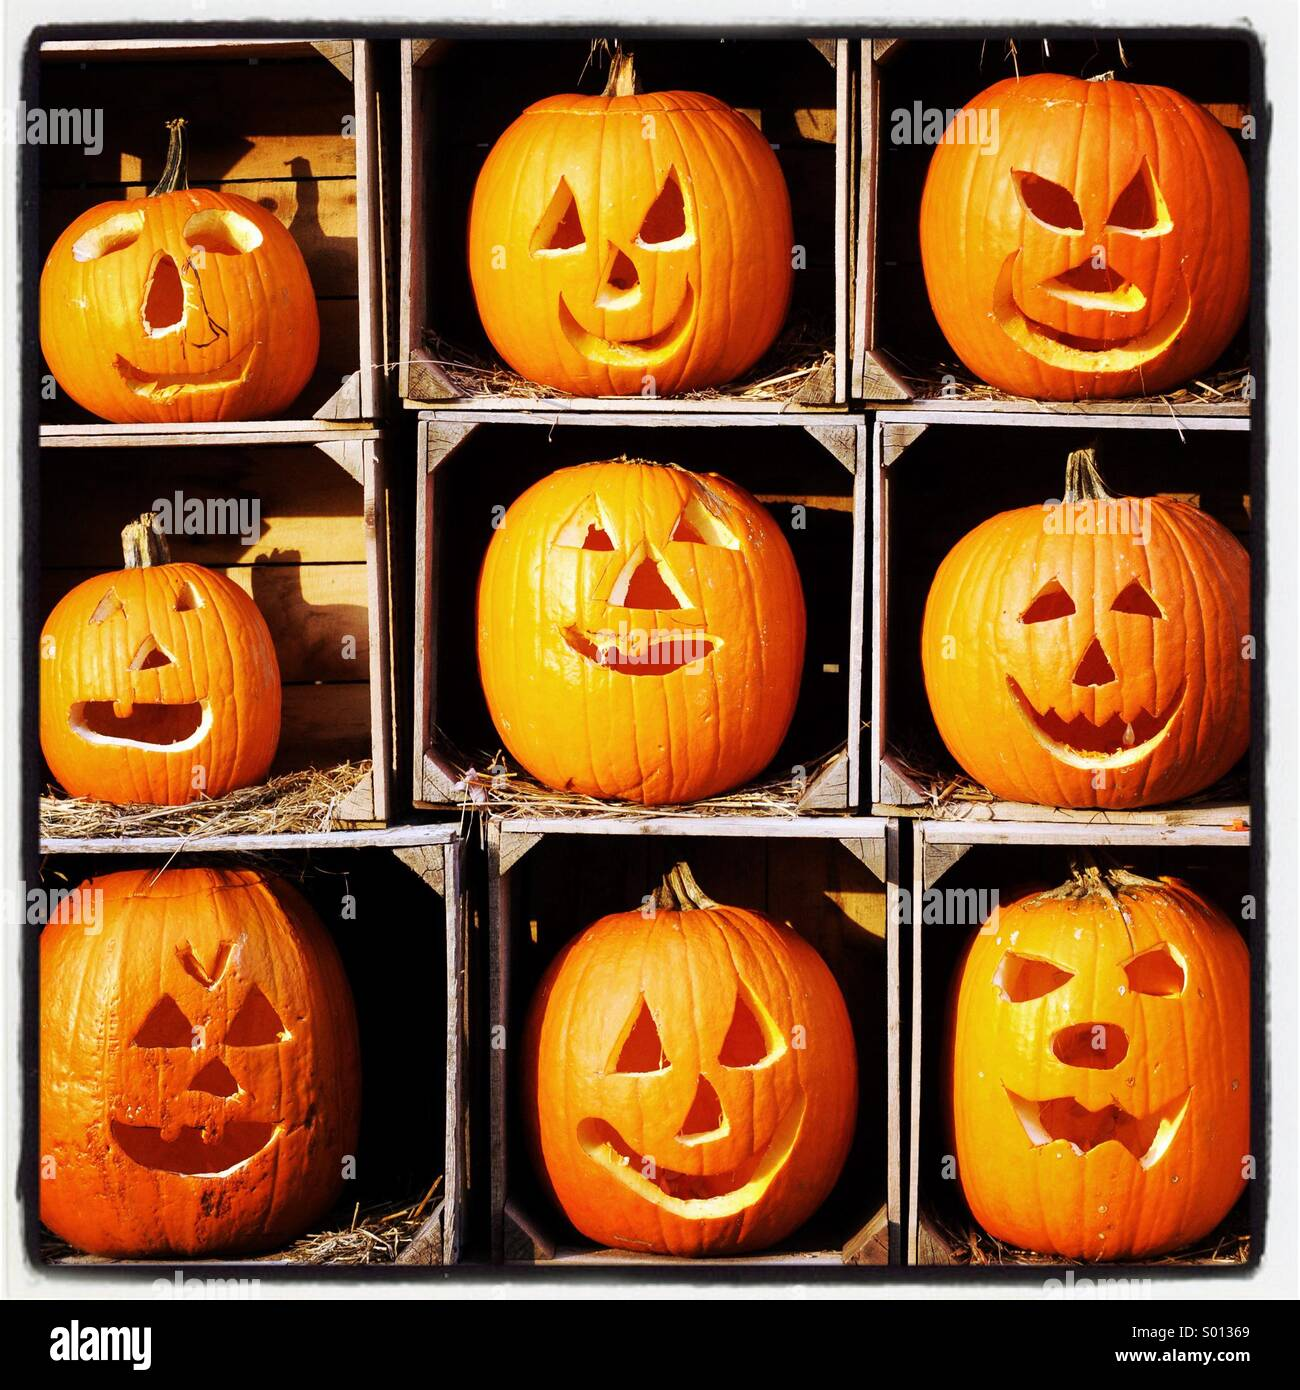 9 Pumpkins Carved Into Faces Stock Photo 309811105 Alamy